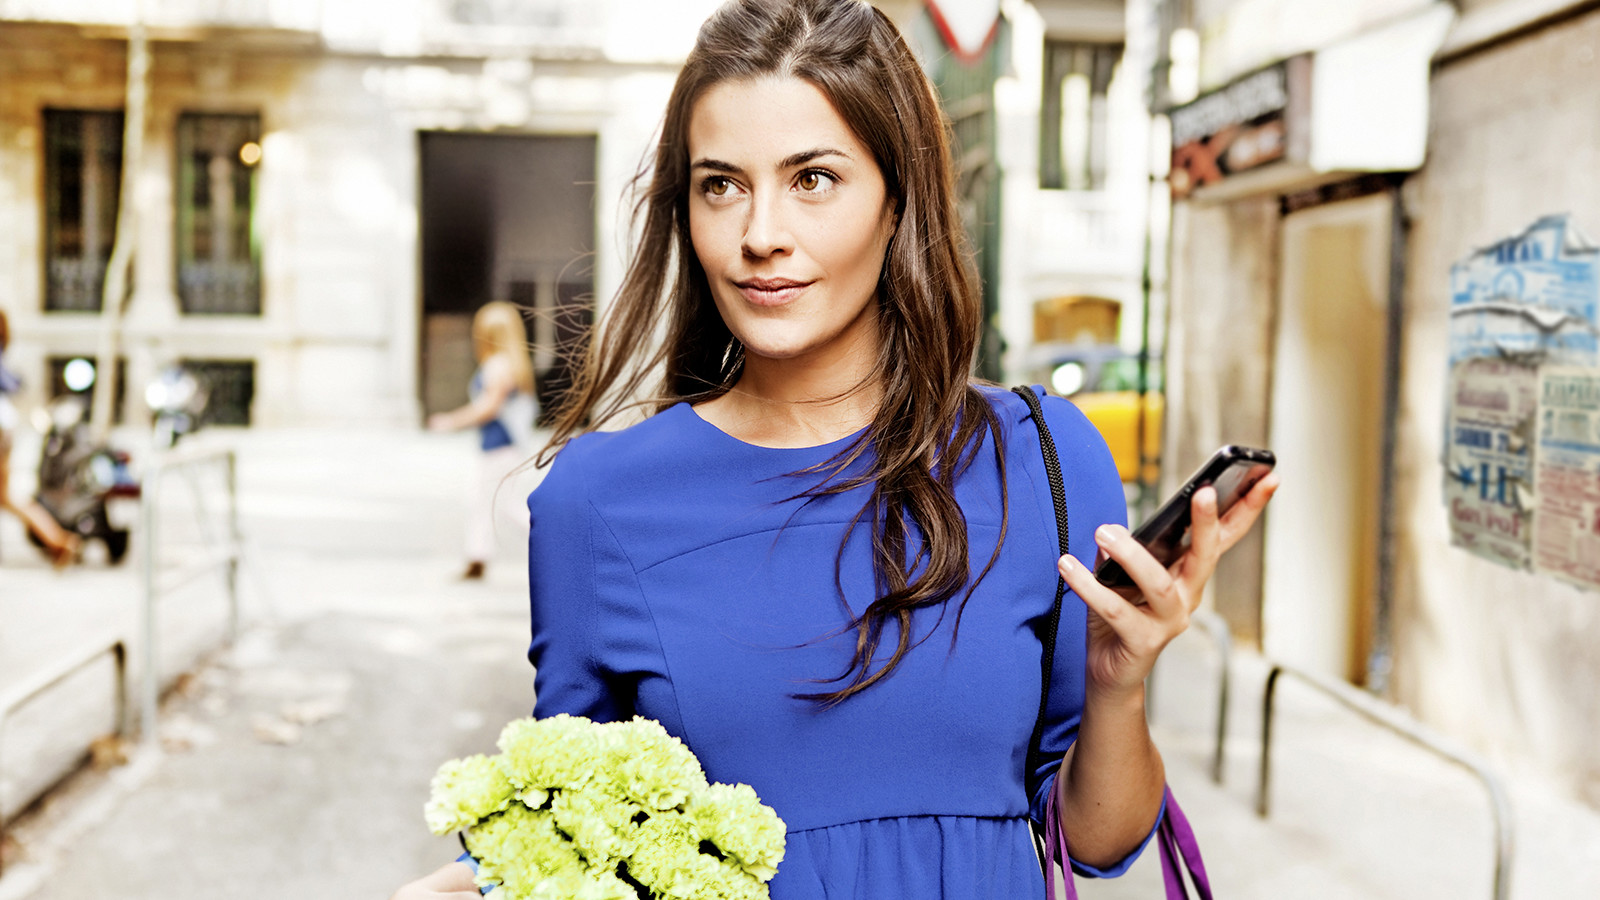 Woman holding a phone and flowers